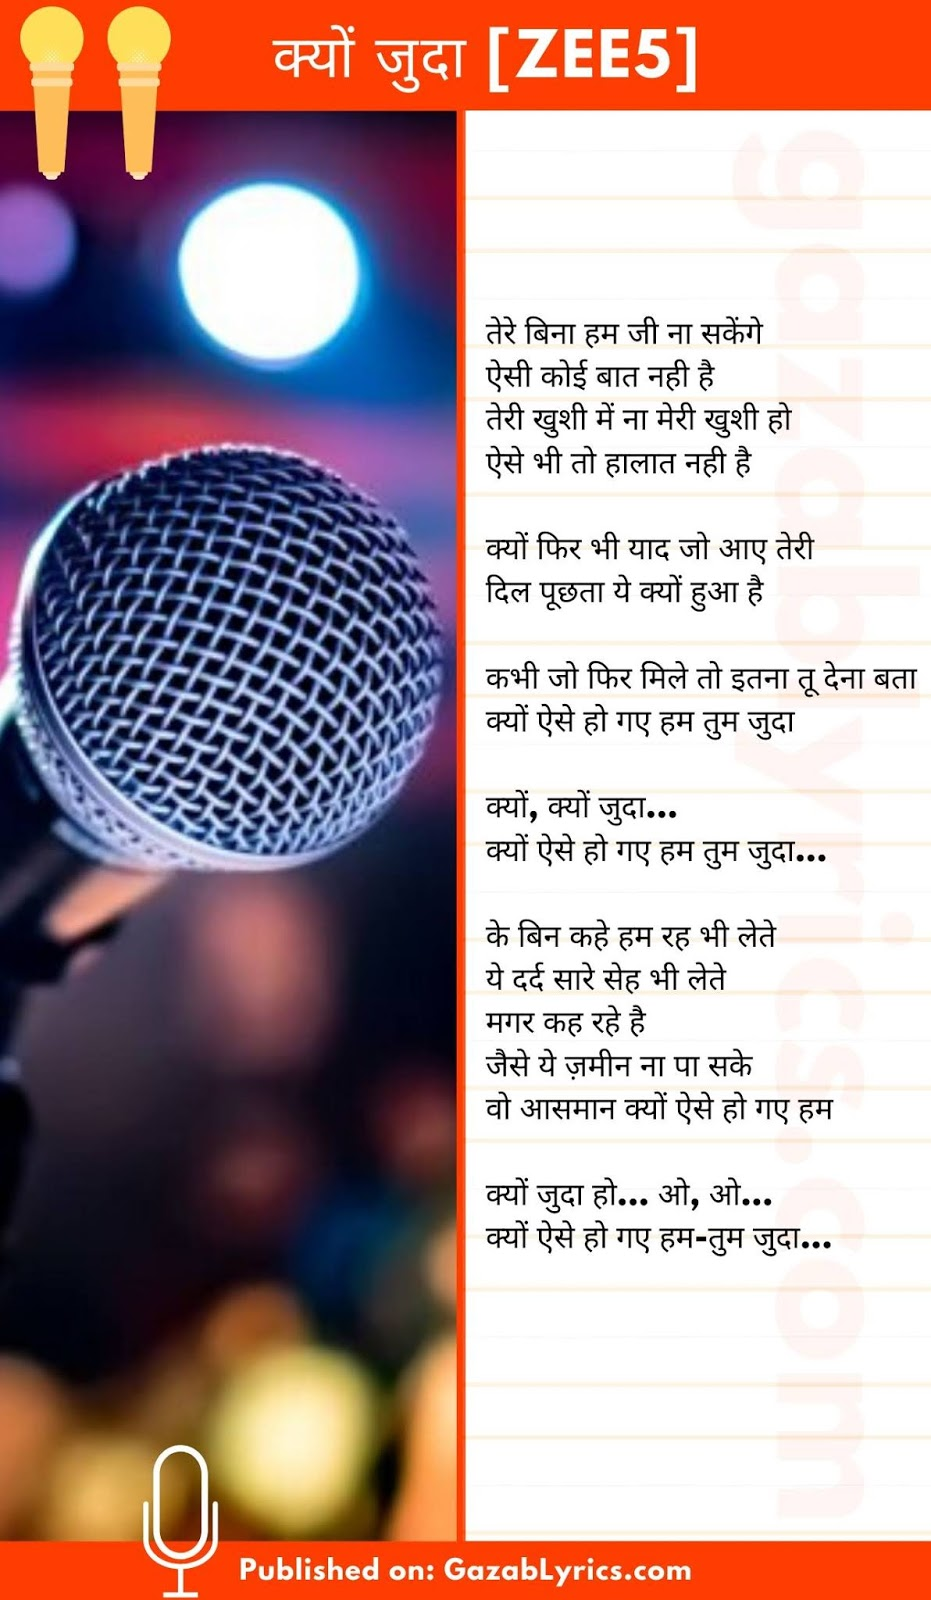 Kyun Judaa song lyrics image